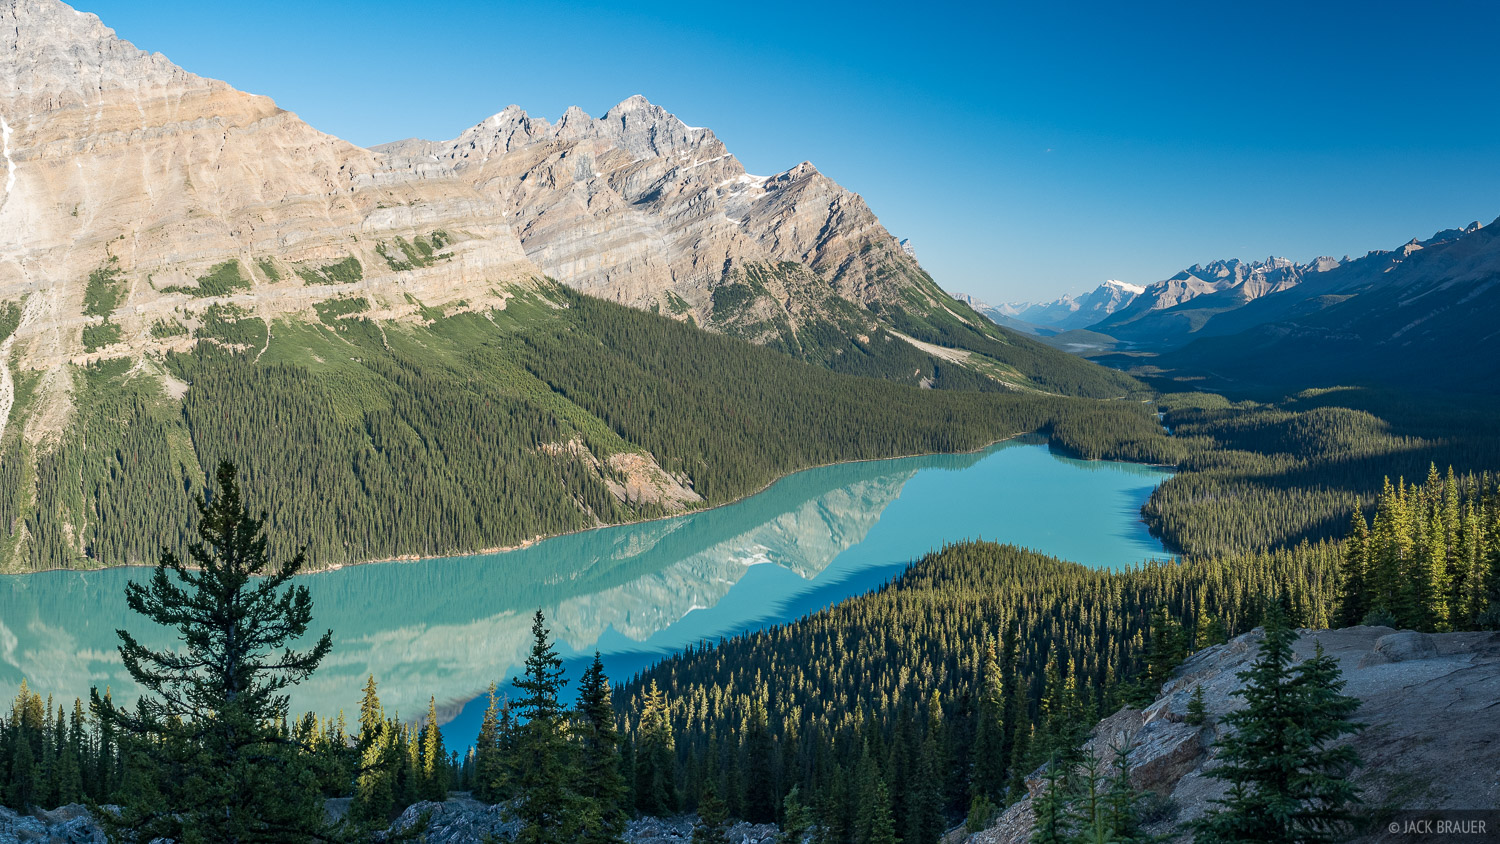 The classic viewpoint view of Peyto Lake - July.